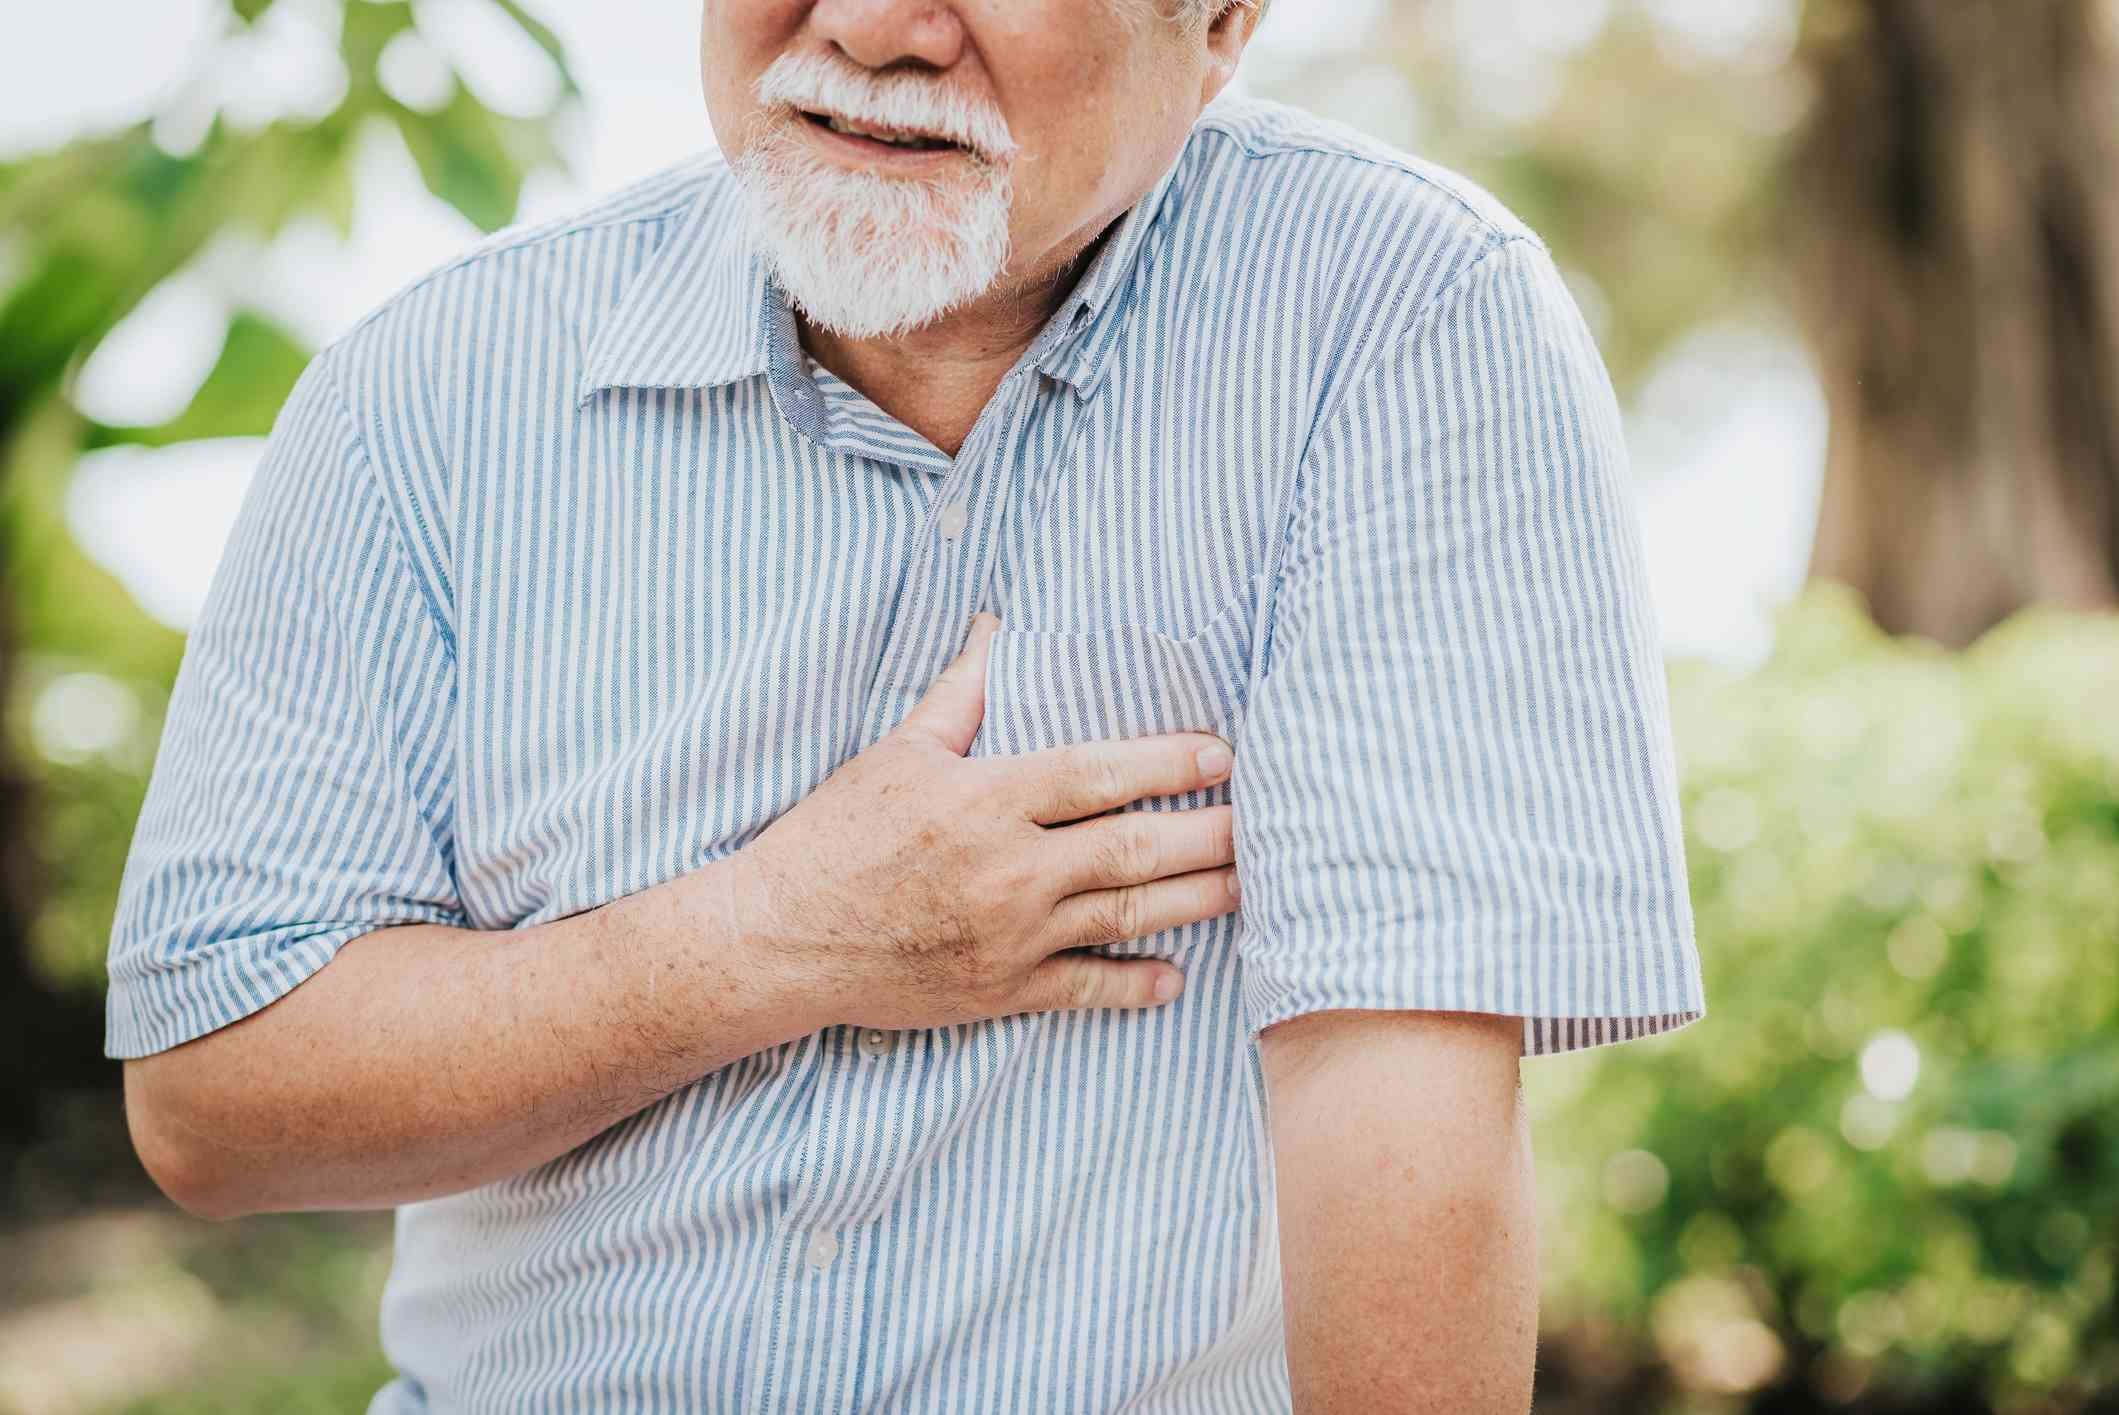 A man holding his chest in pain